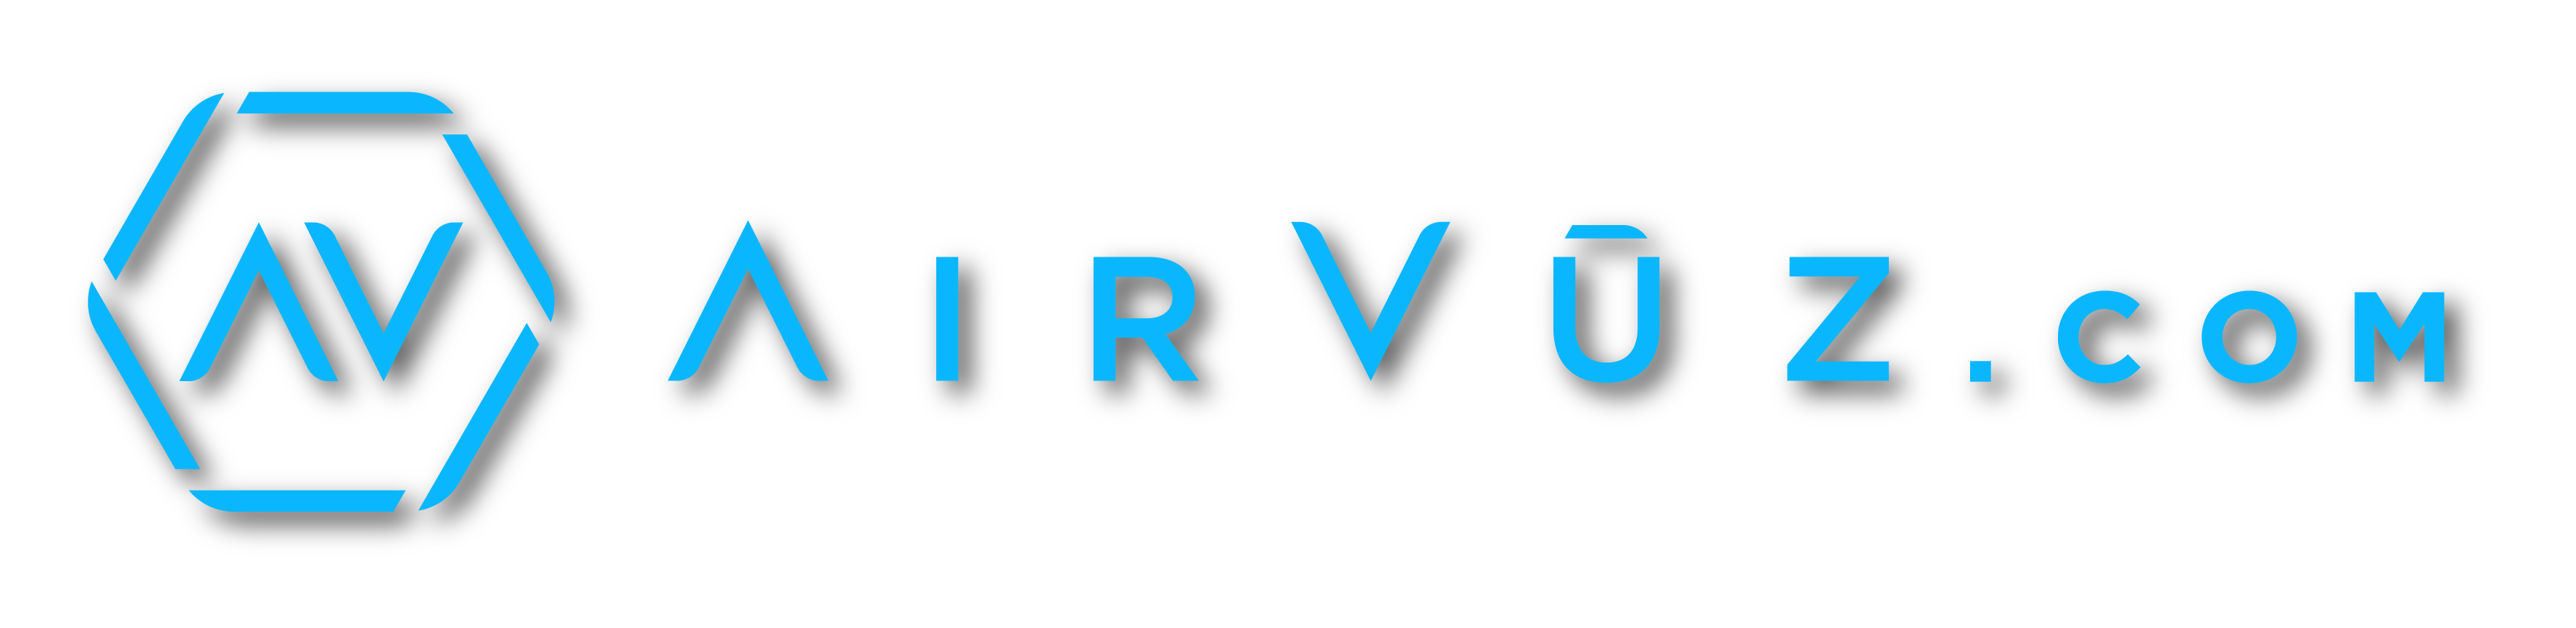 AirVuz Offers Curated Collections of Drone Videos